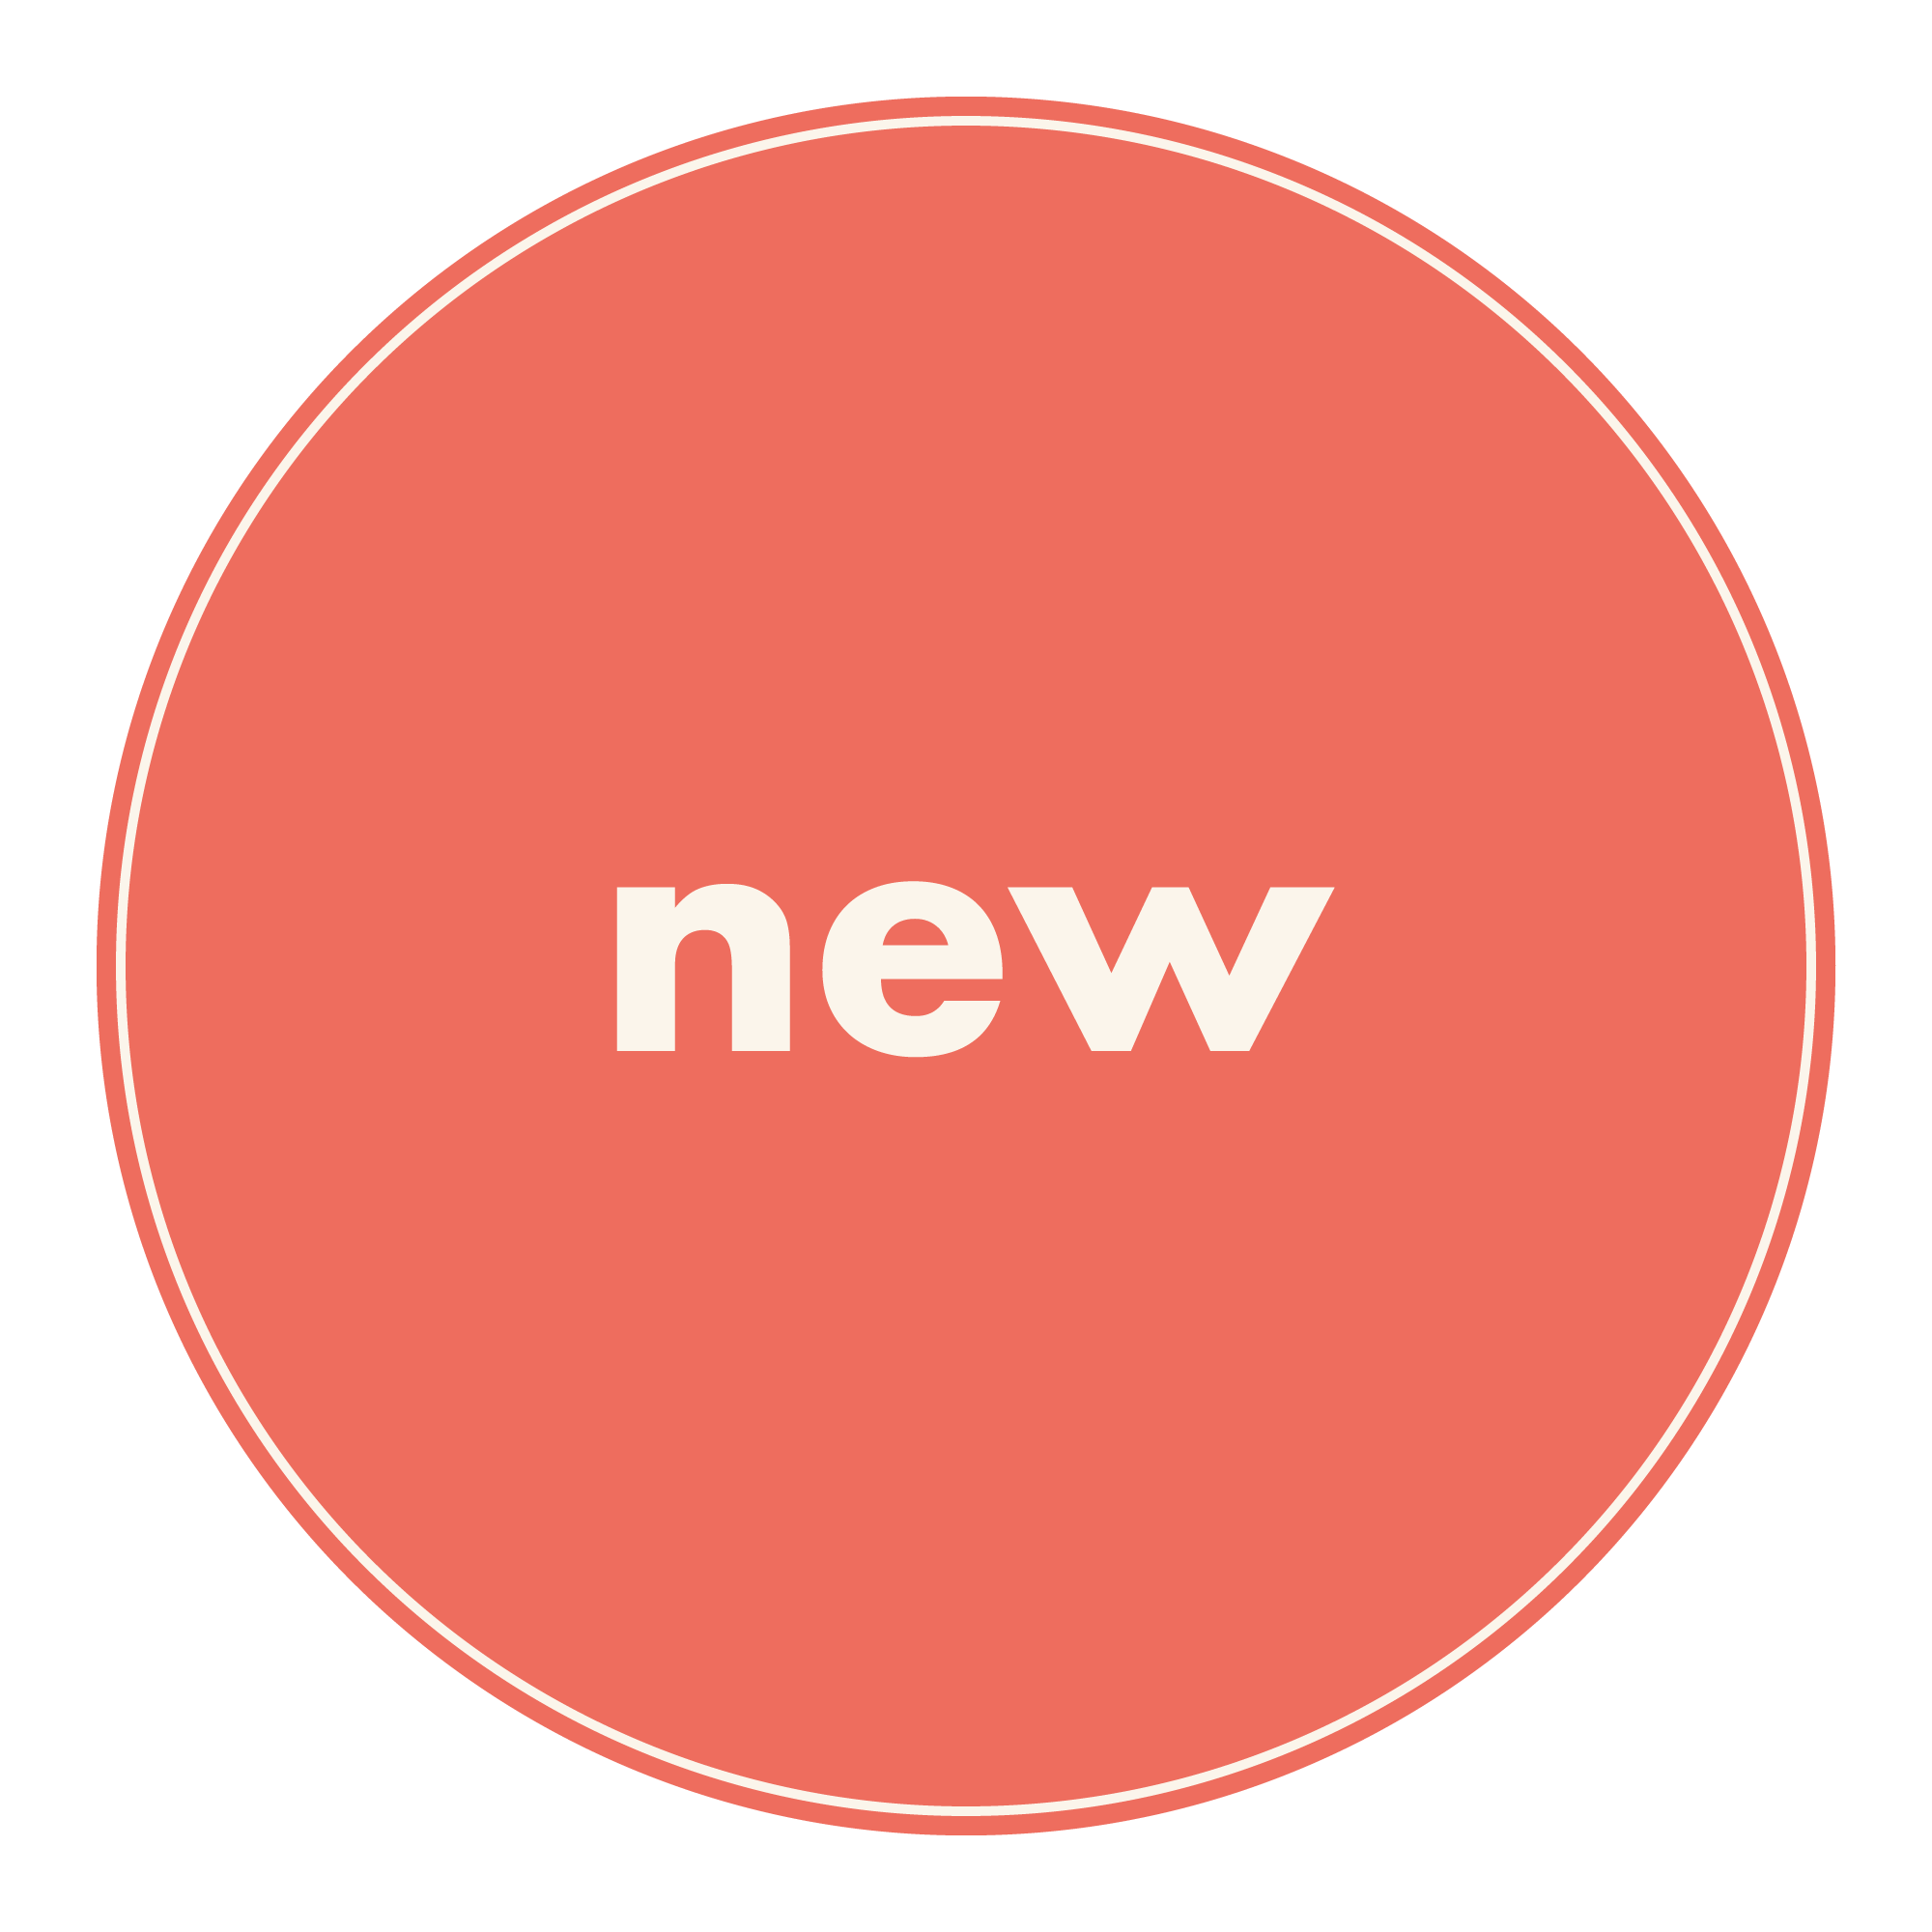 product-attribute-new.